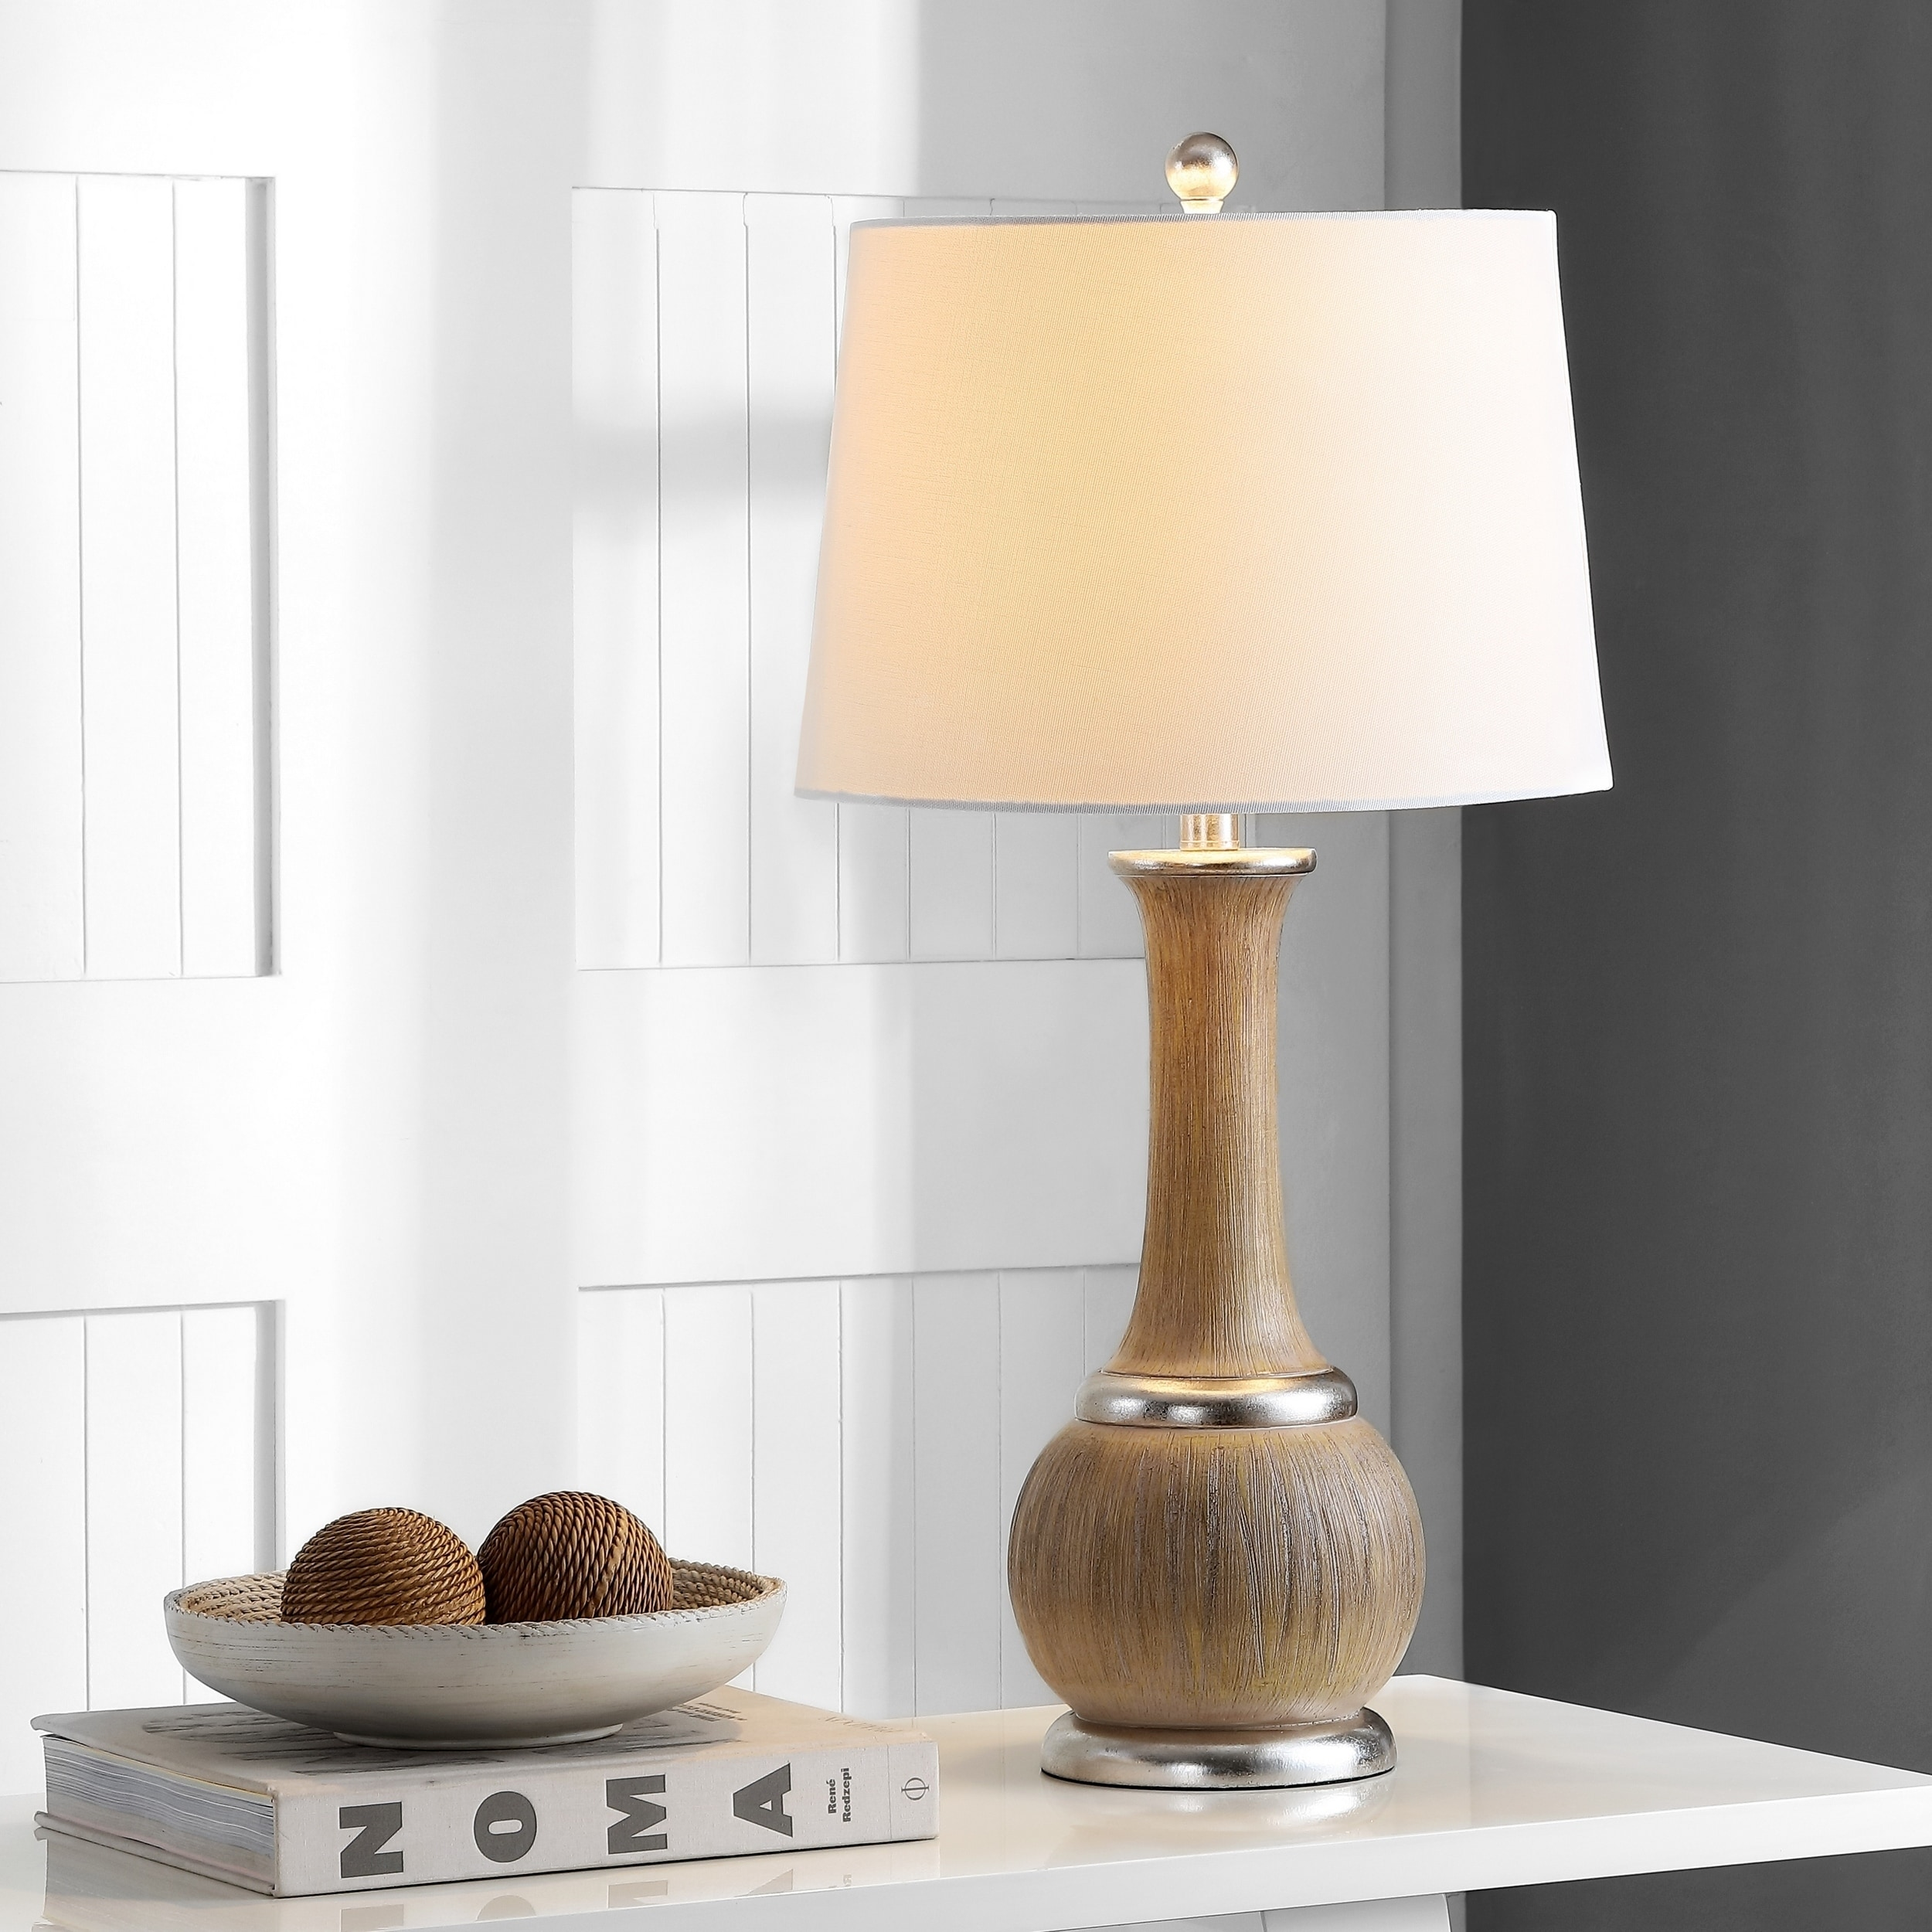 Safavieh Lighting Nash Table Lamp 28 5 Inch Silver 14 X On Free Shipping Today 23614754